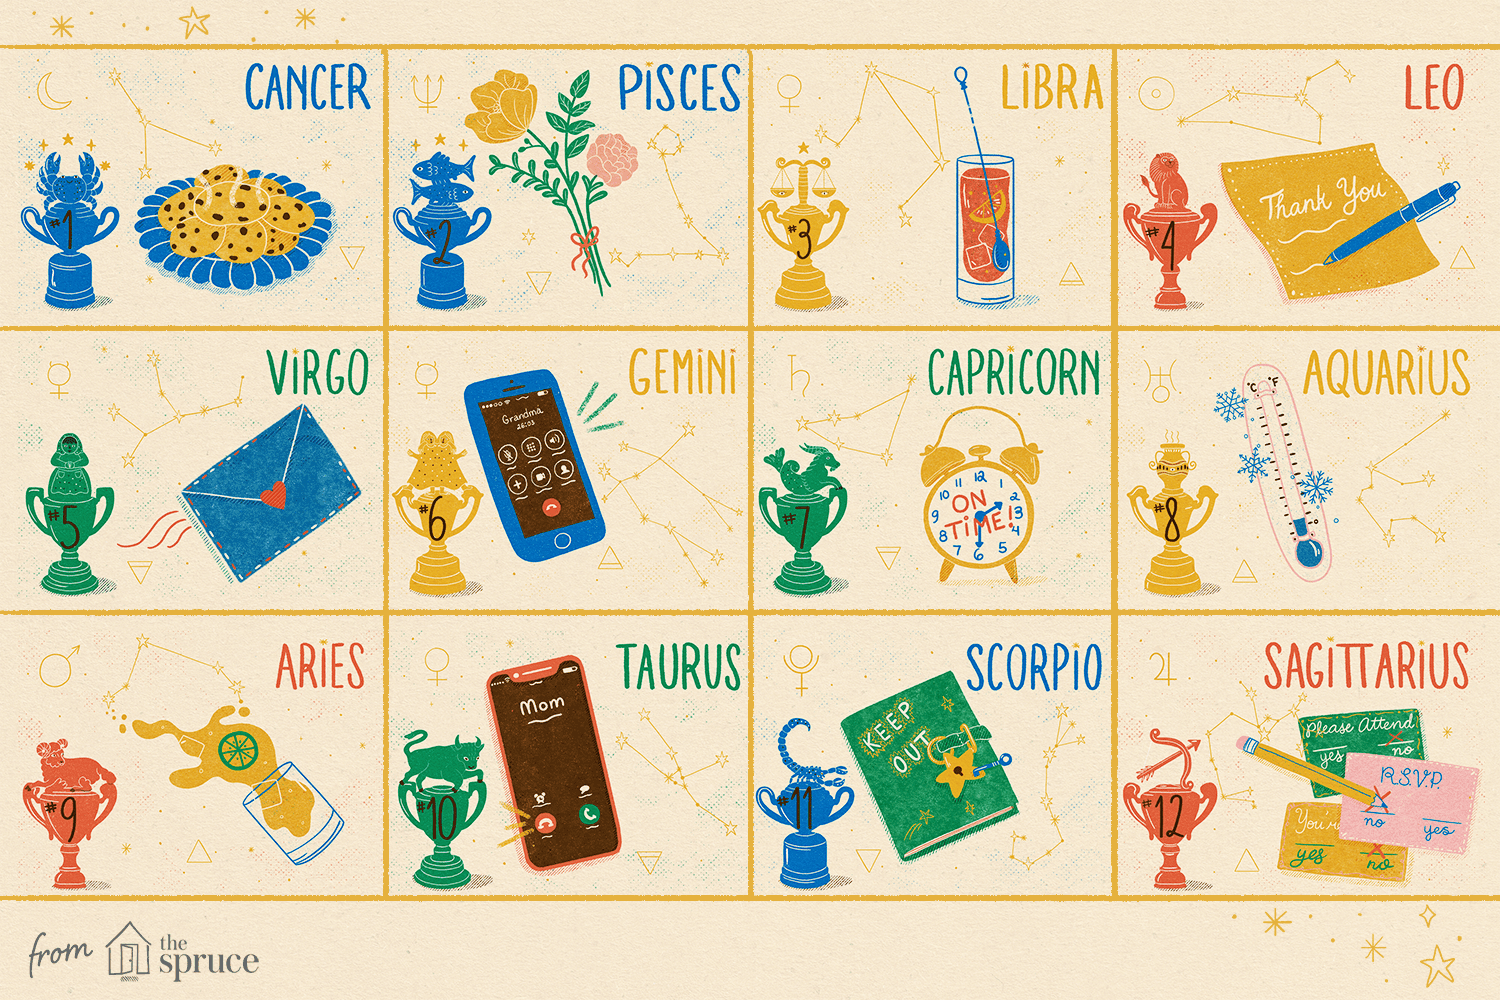 Ranking The Zodiac Signs Based On How Polite They Are